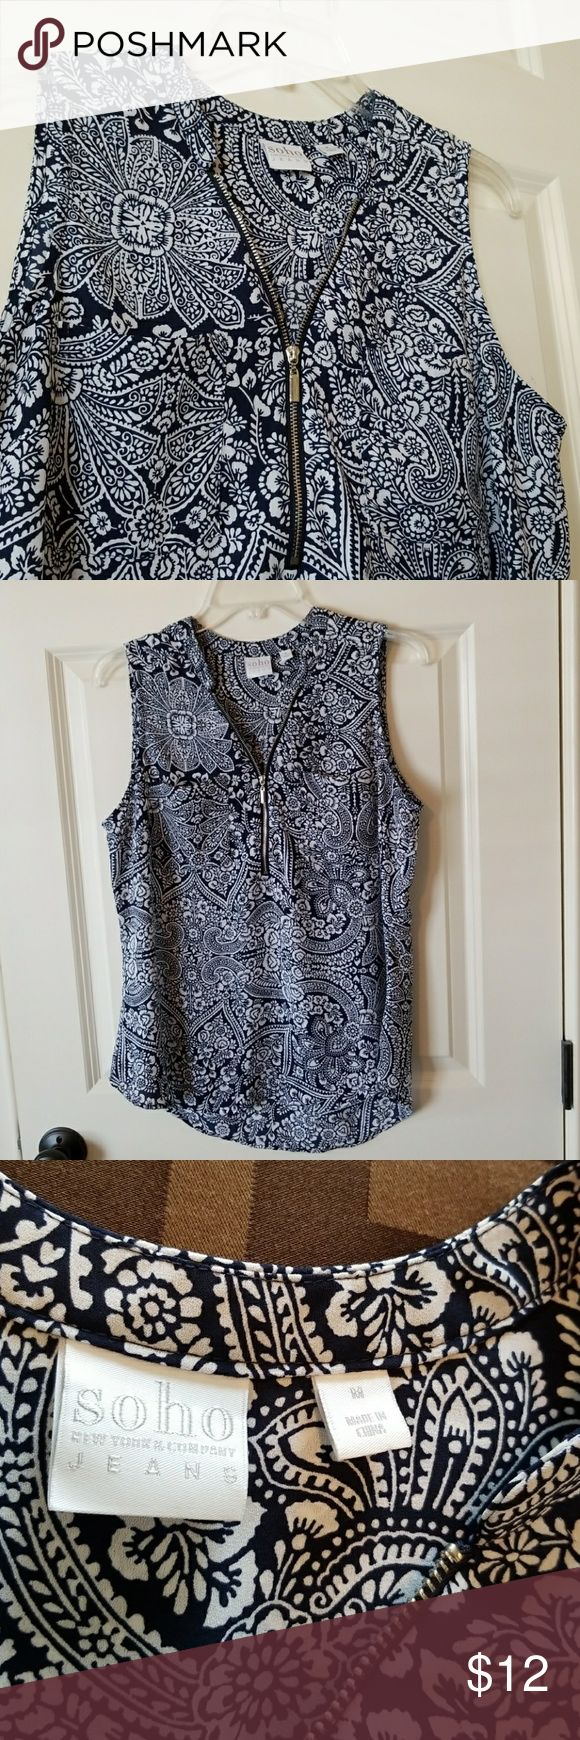 """NY&CO sleeveless top Soho jeans / New York & company sleeveless shirt featuring front zipper and two decorative  Slip pockets at bust. Patterned navy blue and white. 100% polyester,  machine wash. No flaws.  20"""" pit to pit New York & Company Tops Tank Tops"""